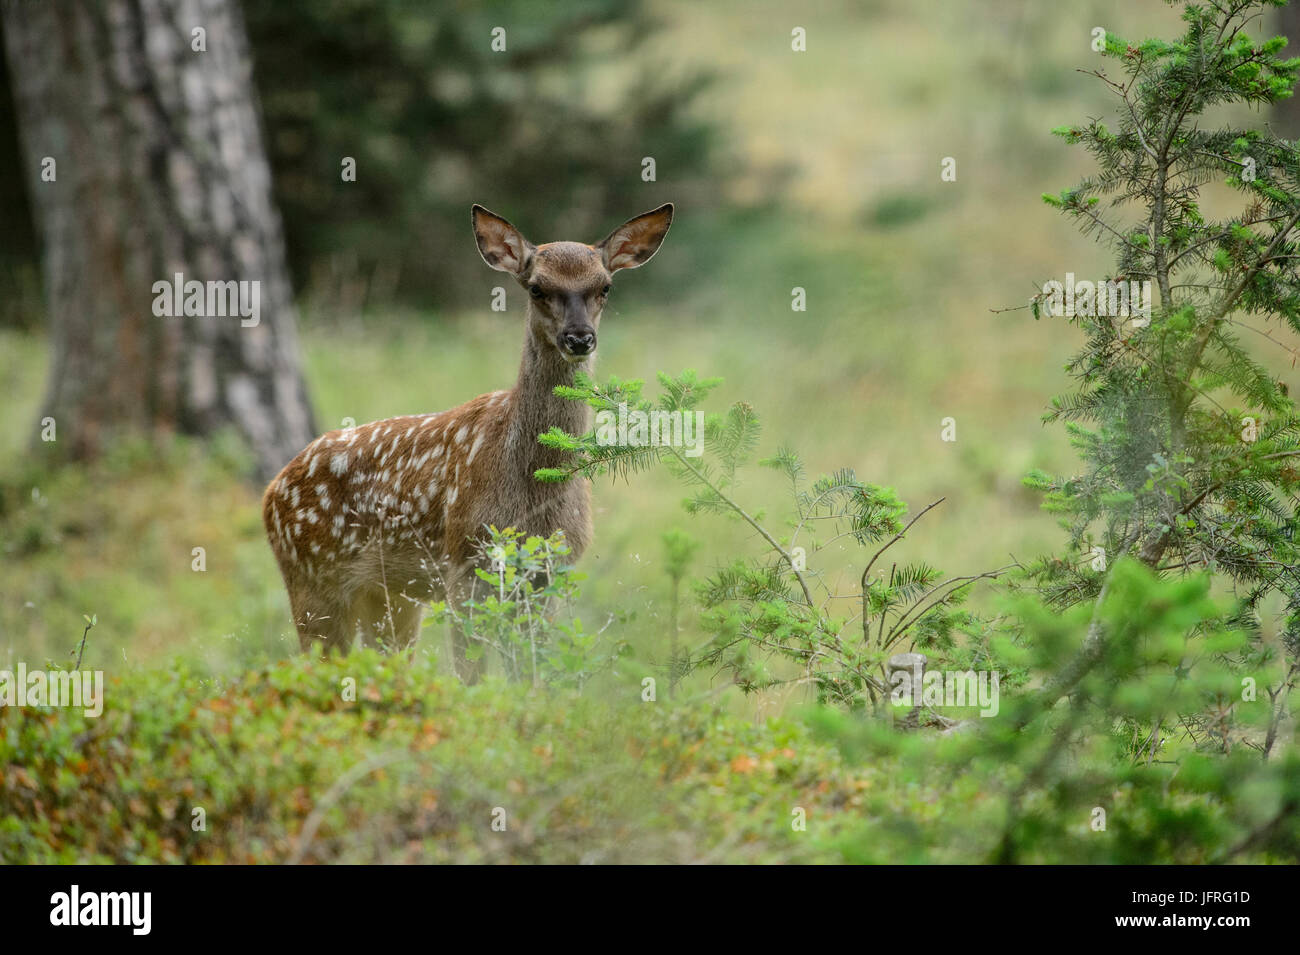 Red deer calf with spotted camouflage fur in a forest field. Hoge Veluwe National Park, Netherlands - Stock Image